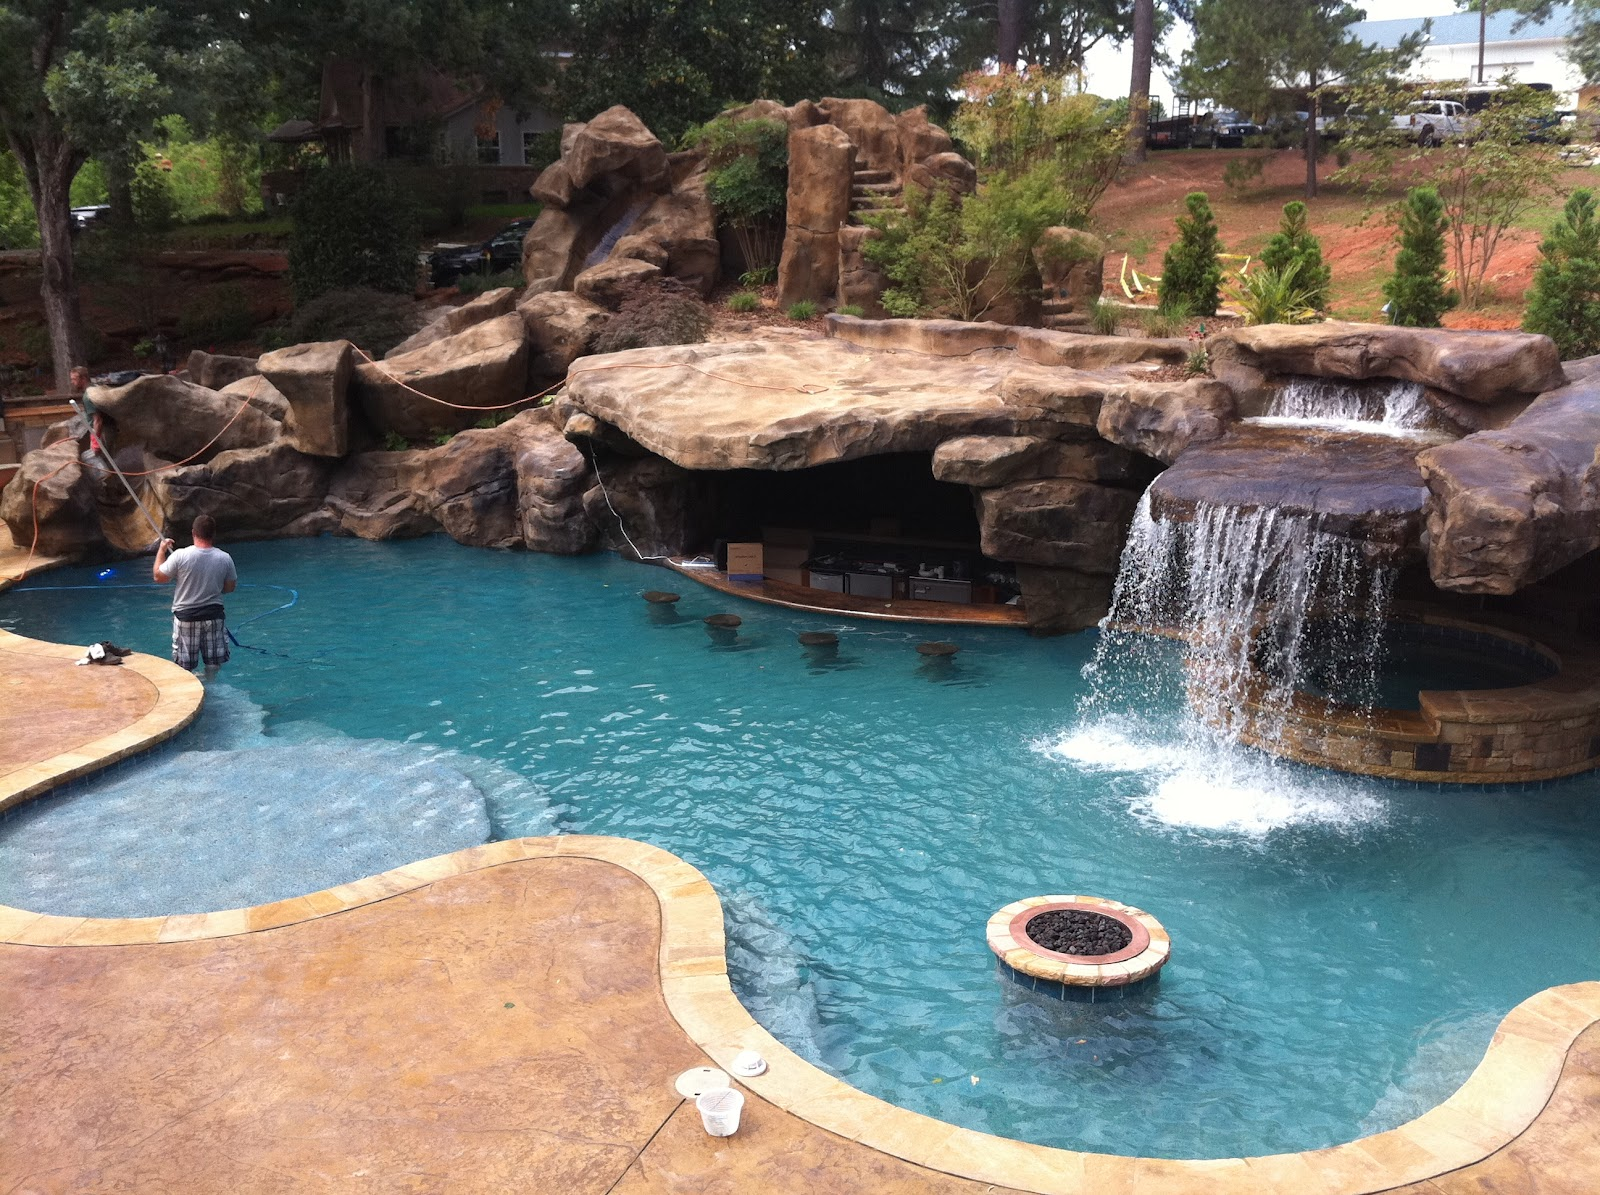 Cool Backyard Pool Designs for Your Outdoor Space: Estimated Cost Of Inground Pool | Backyard Pool Designs | Average Cost Of Putting In A Swimming Pool